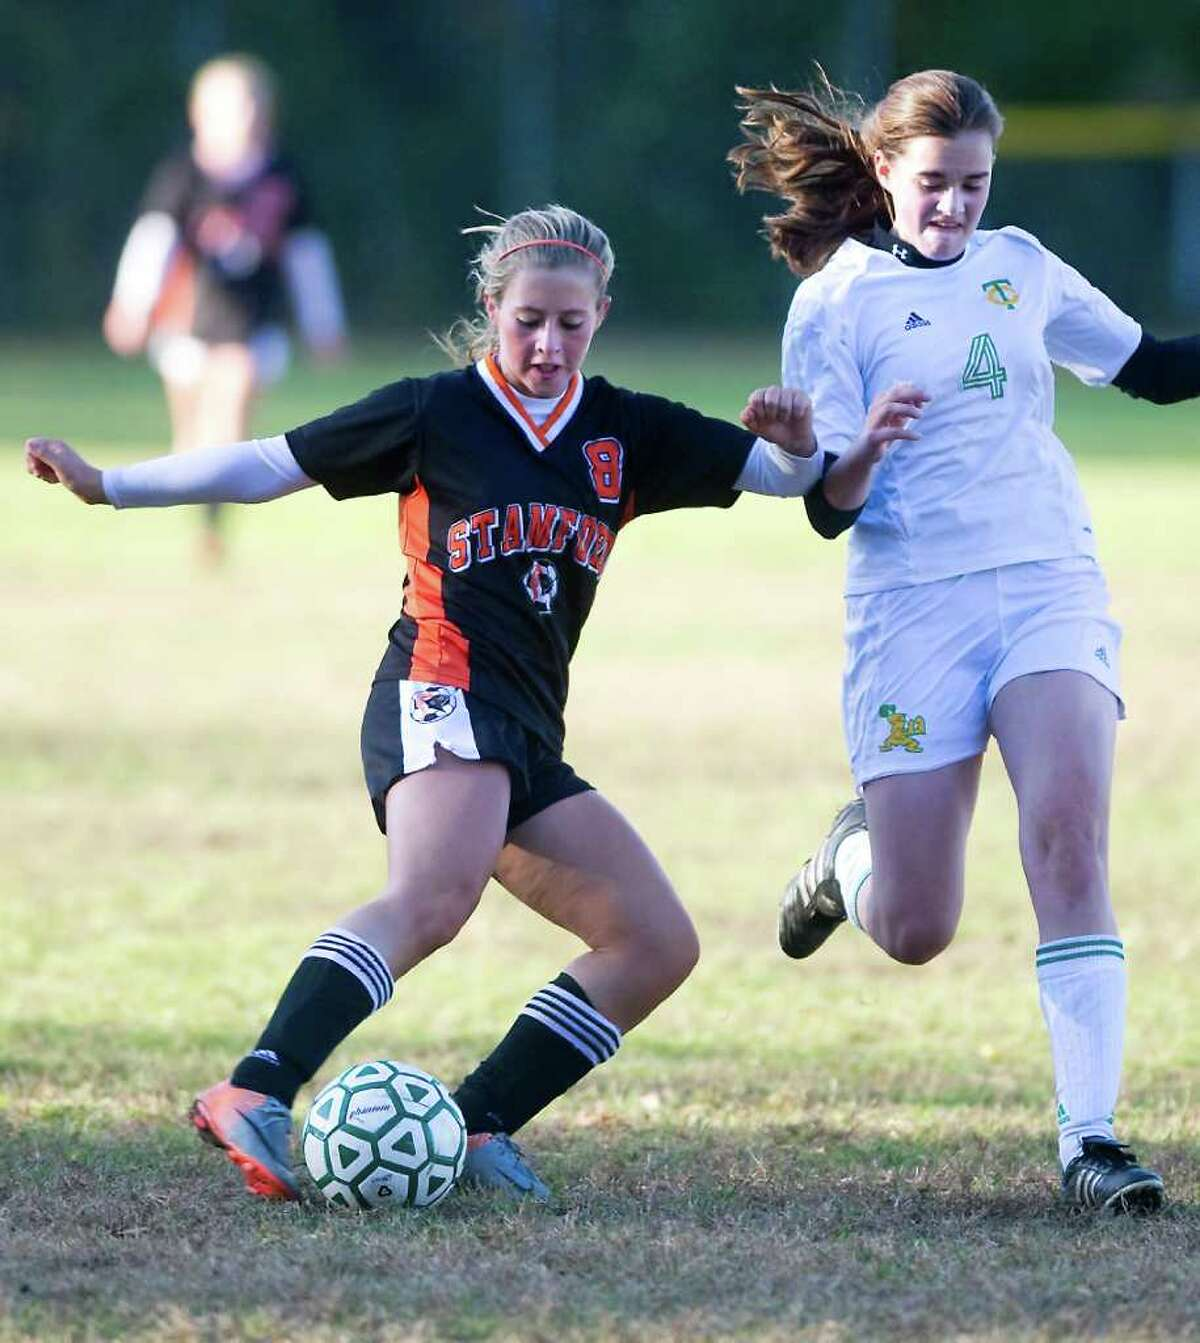 Stamford High School's Kaela Schneider controls the ball against Trinity Catholic High School's Kathryn Connolly in girls soccer at Trinity in Stamford, Conn. on Friday October 22, 2010. Stamford won 4-1.